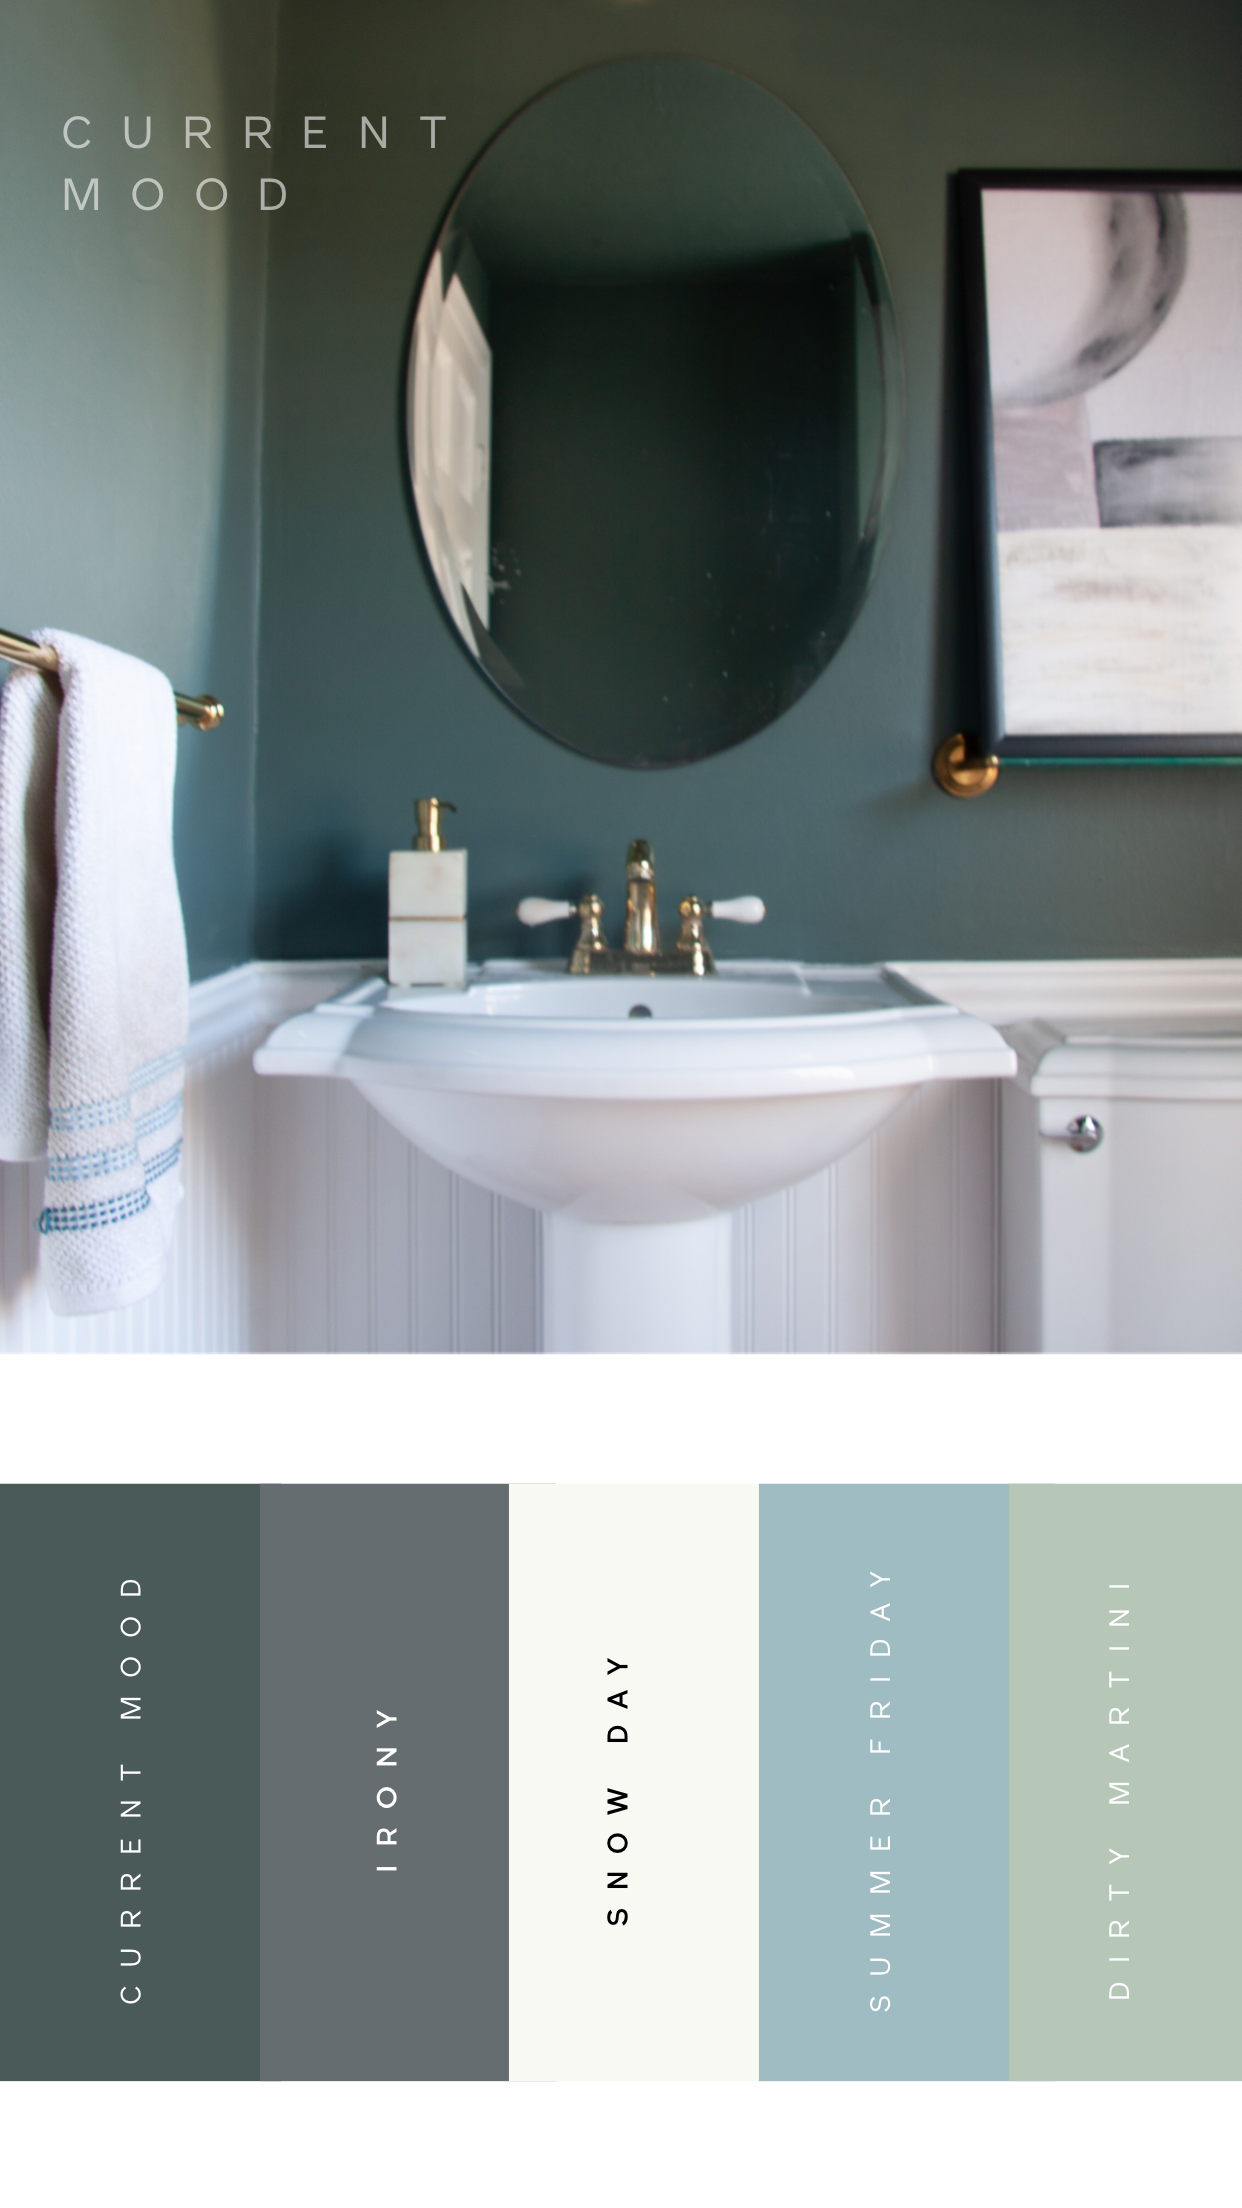 Paint Colors Paint Colors Bedroom Paint Colors For Bathrooms Green Paint Colors Small Bathroom Colors Best Bathroom Colors Paint Colors For Living Room